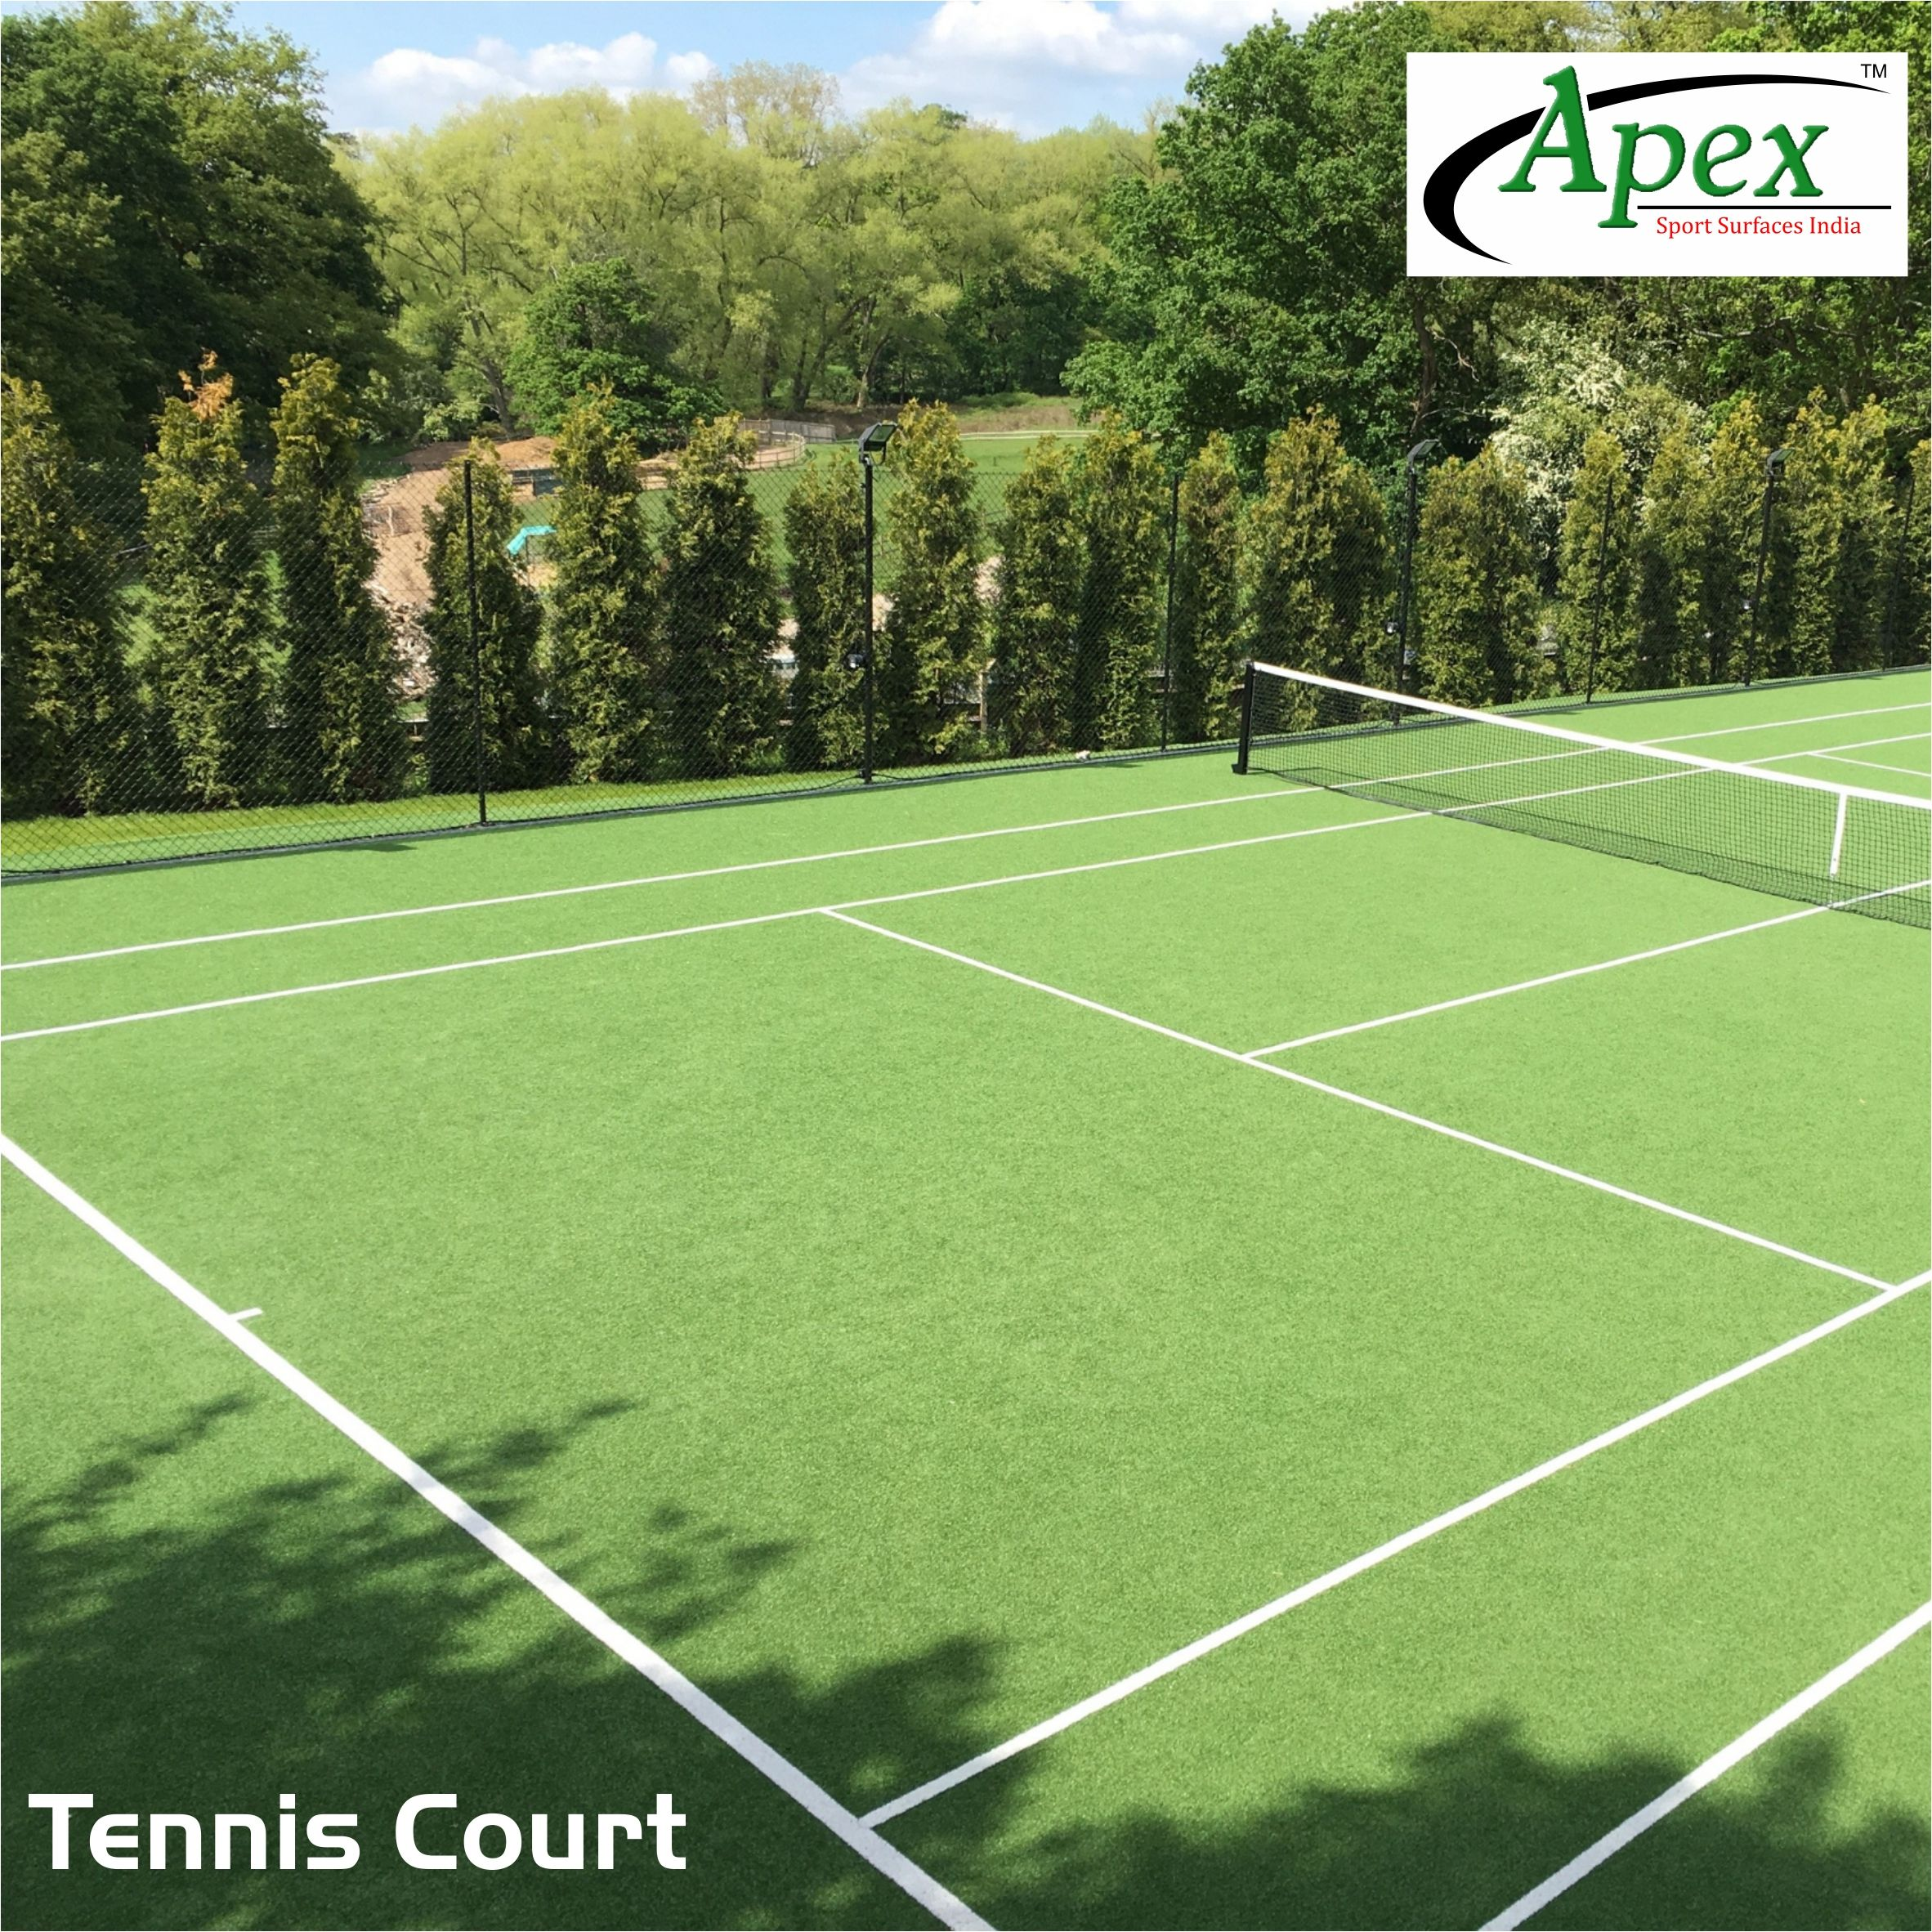 Apex Tennis Courts Are Classy And Good To Play On Have You Tried Our Courts Yet Badminton Play Sports Surfaces Ground Tennis Tennis Court Tennis Event